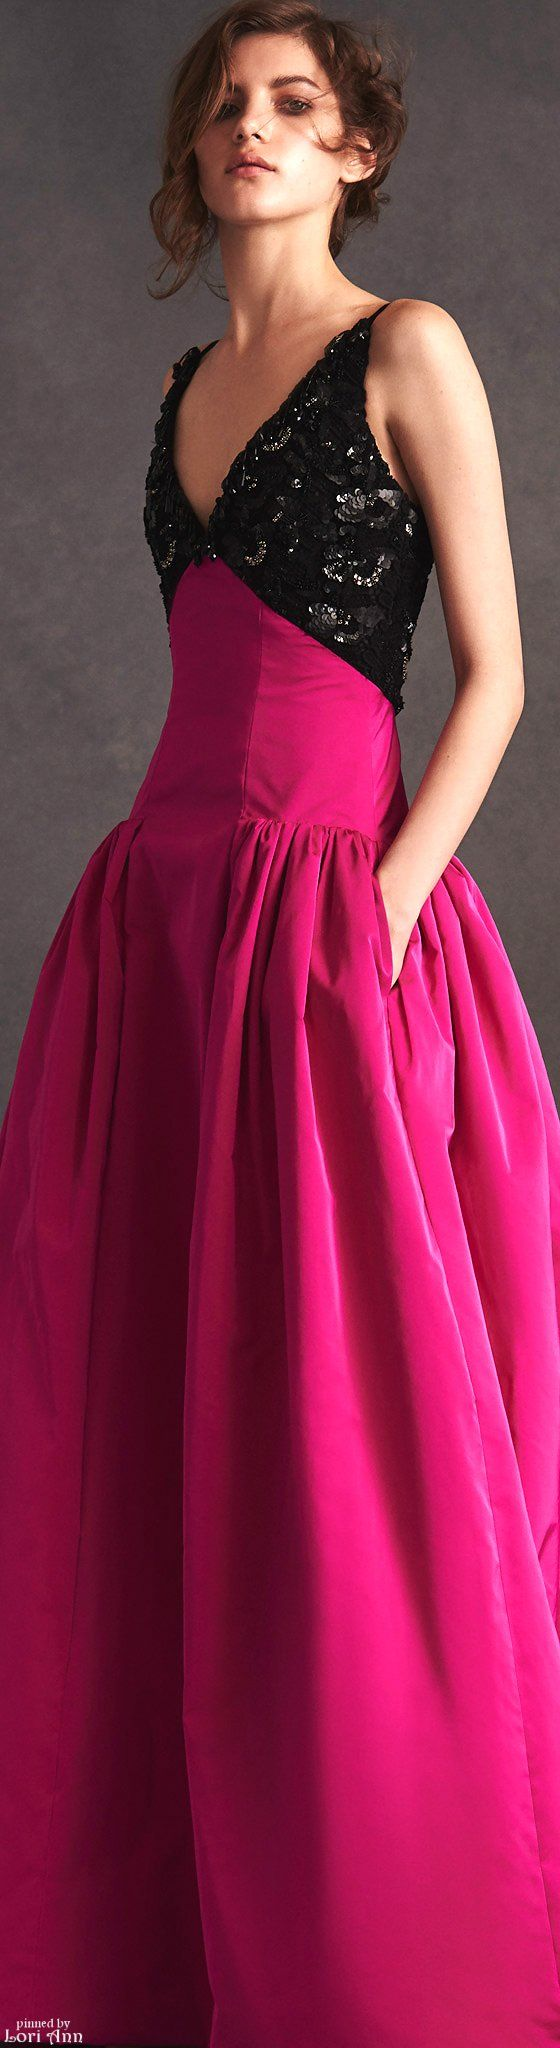 Wedding Fuschia Dress 17 best ideas about fuschia dress on pinterest pink giambattista valli dresses up ponytails with a hit of unexpected color